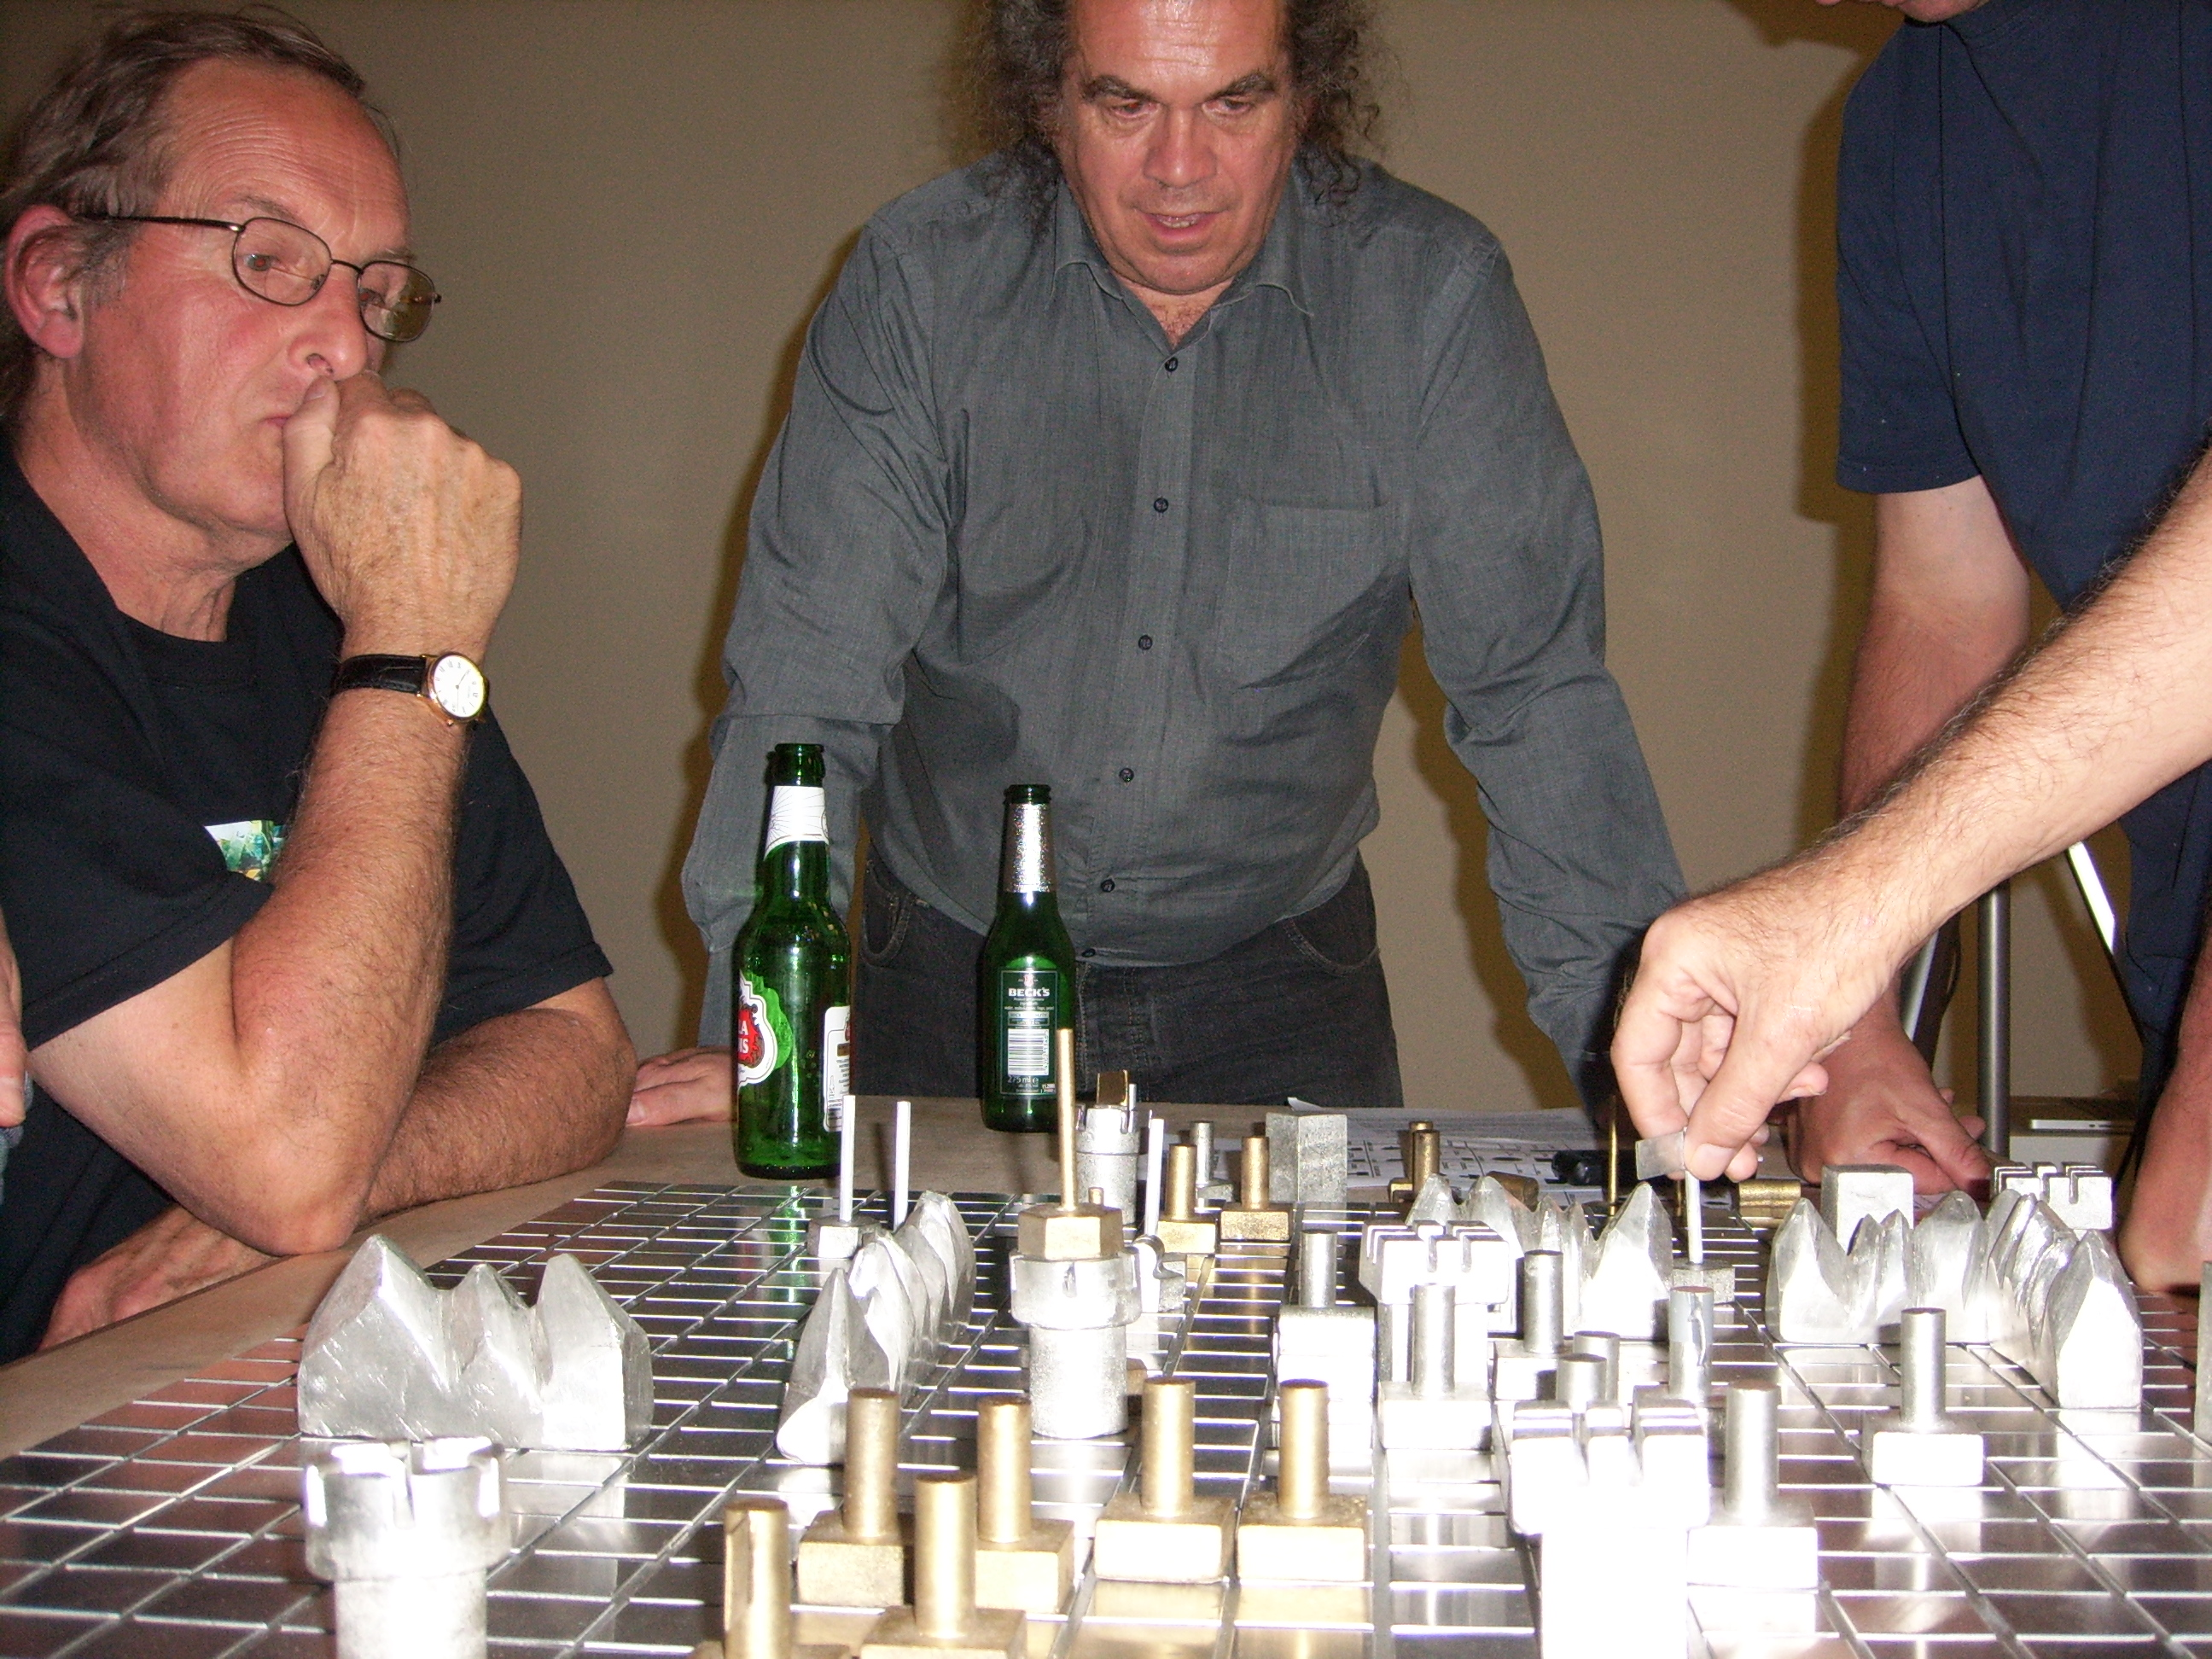 game_players_11